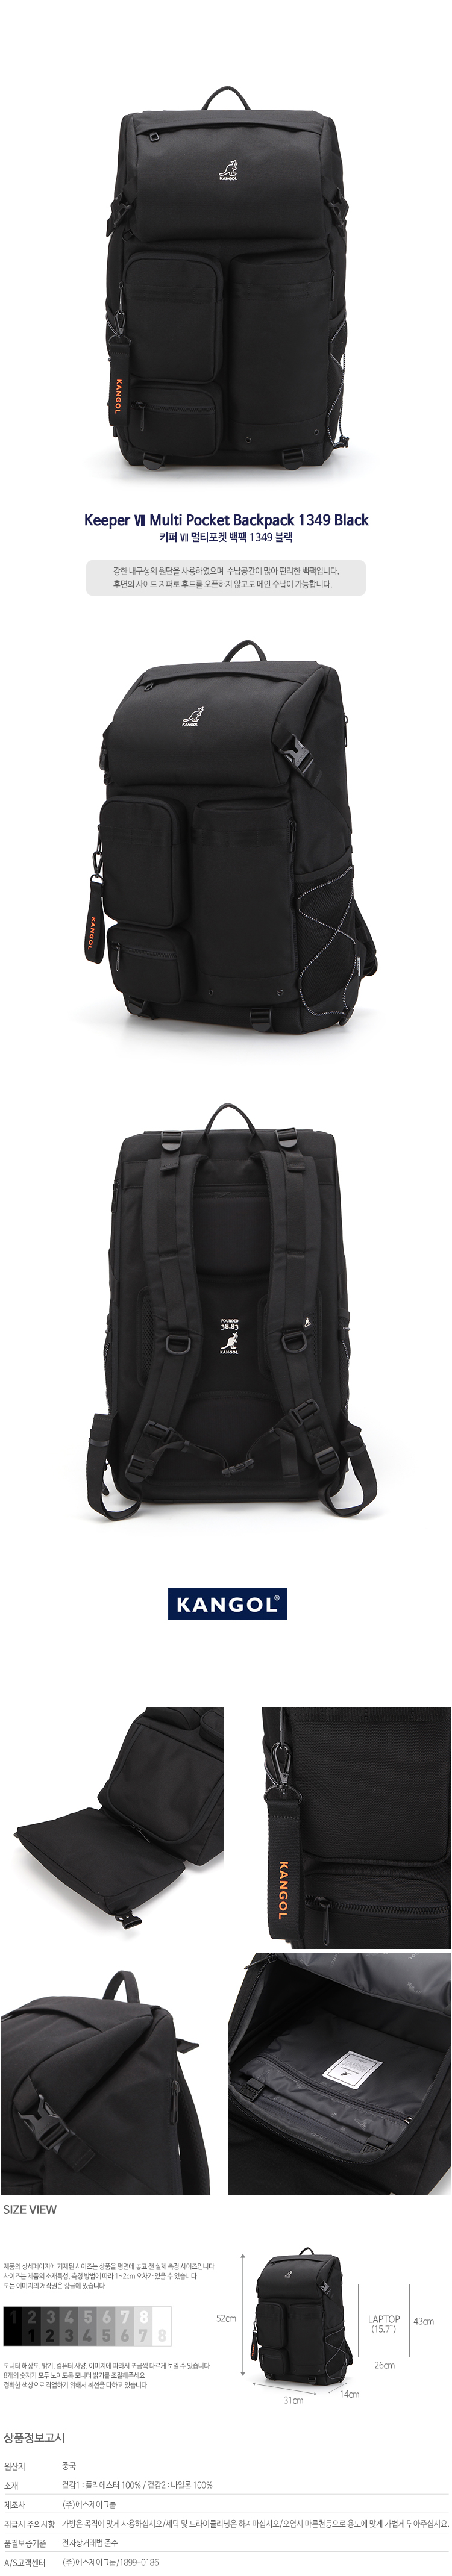 KeeperⅦ Multi Pocket Backpack 1349 BLACK